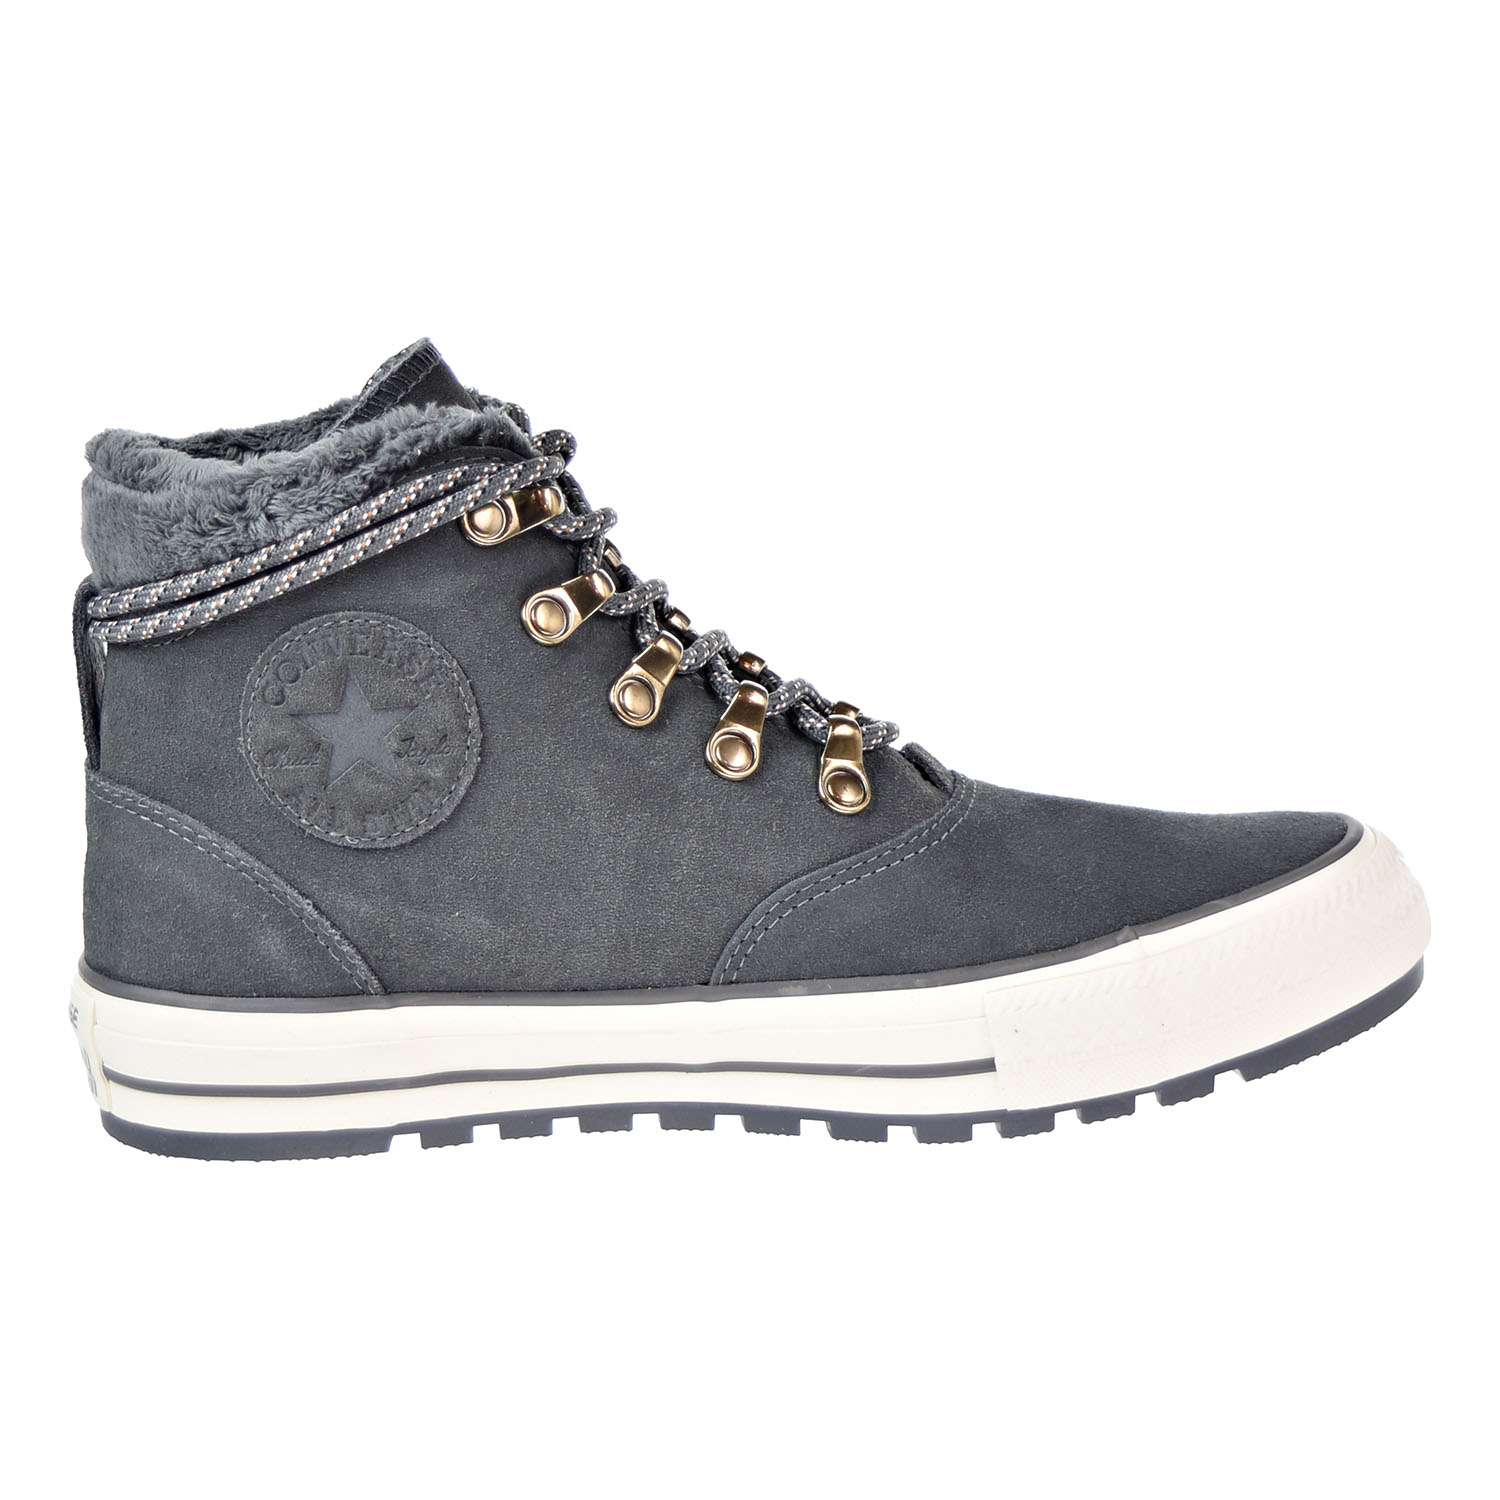 be9cf599e20f0c Details about Converse CT All Star High Top Women s Ember Boots  Thunder Egret 557934c